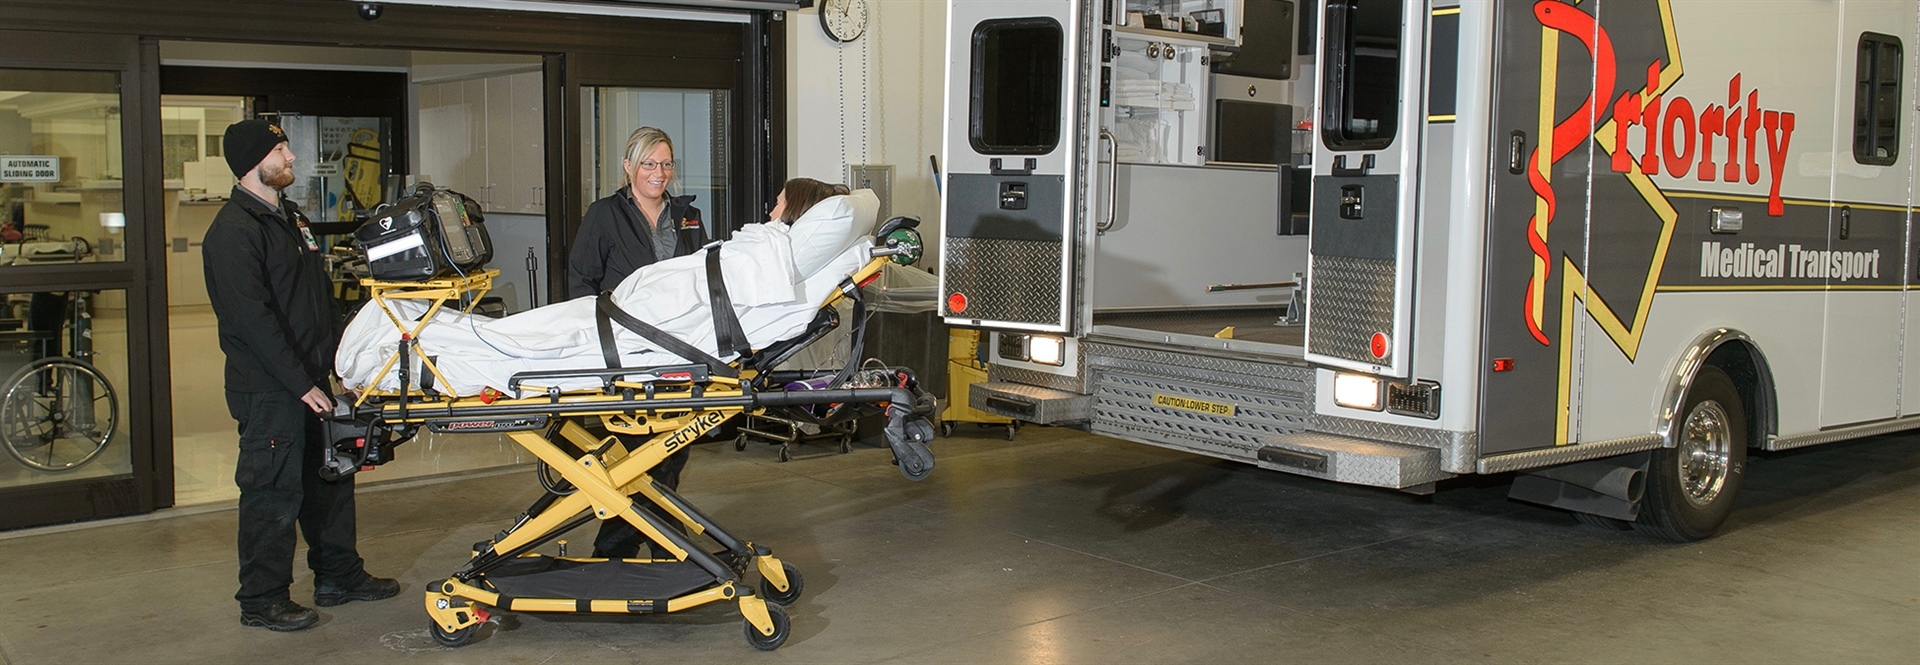 PMT Ambulance, Patient Transport